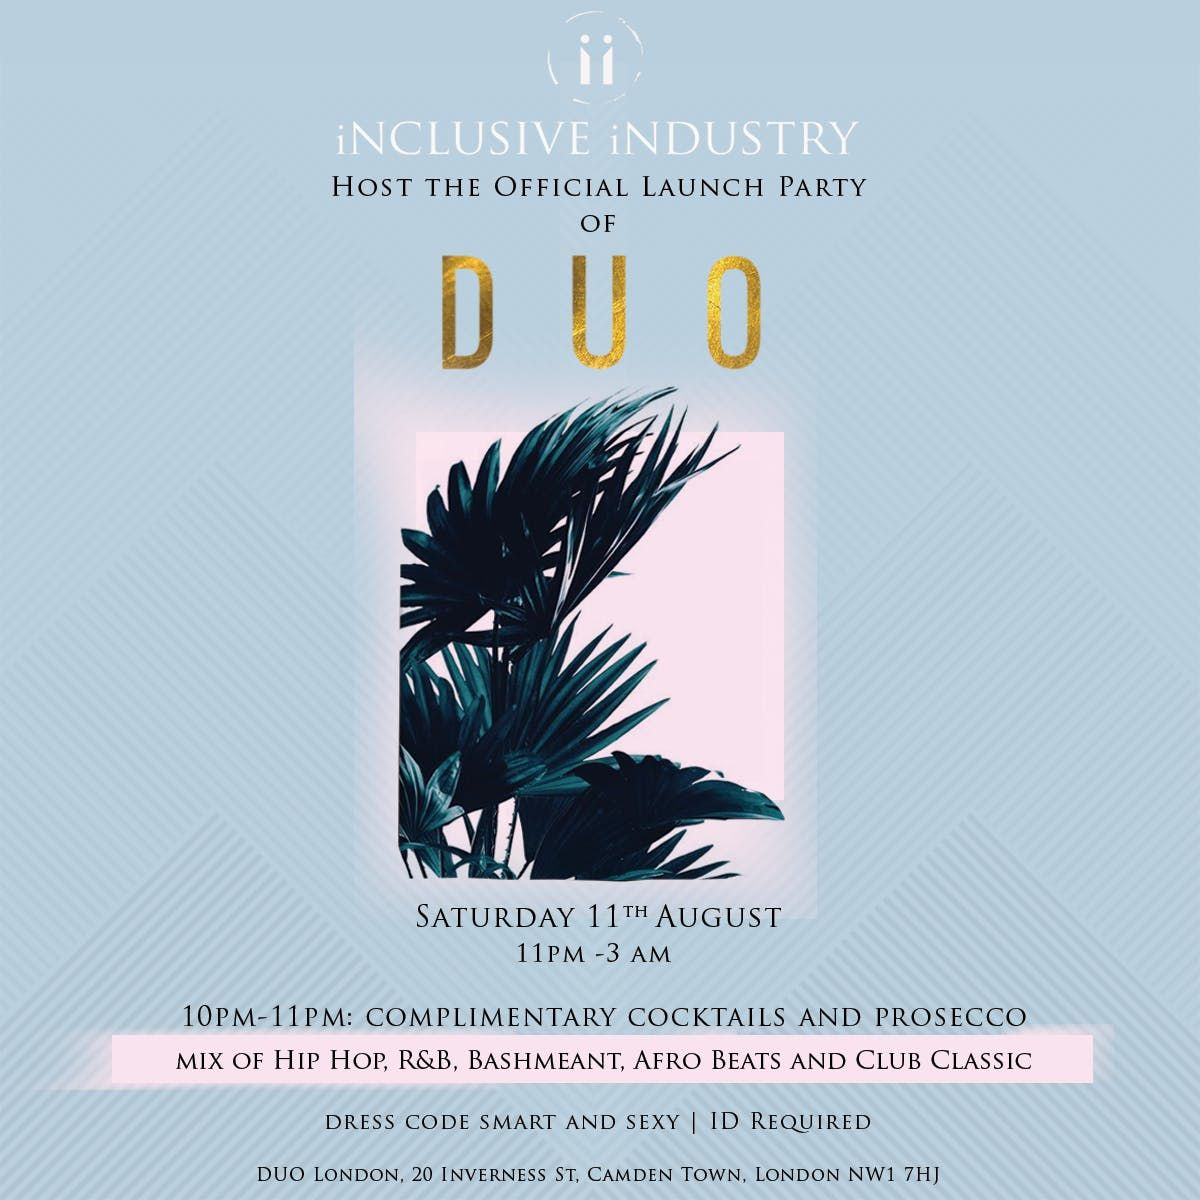 Inclusive Industry host the official launch party of DUO